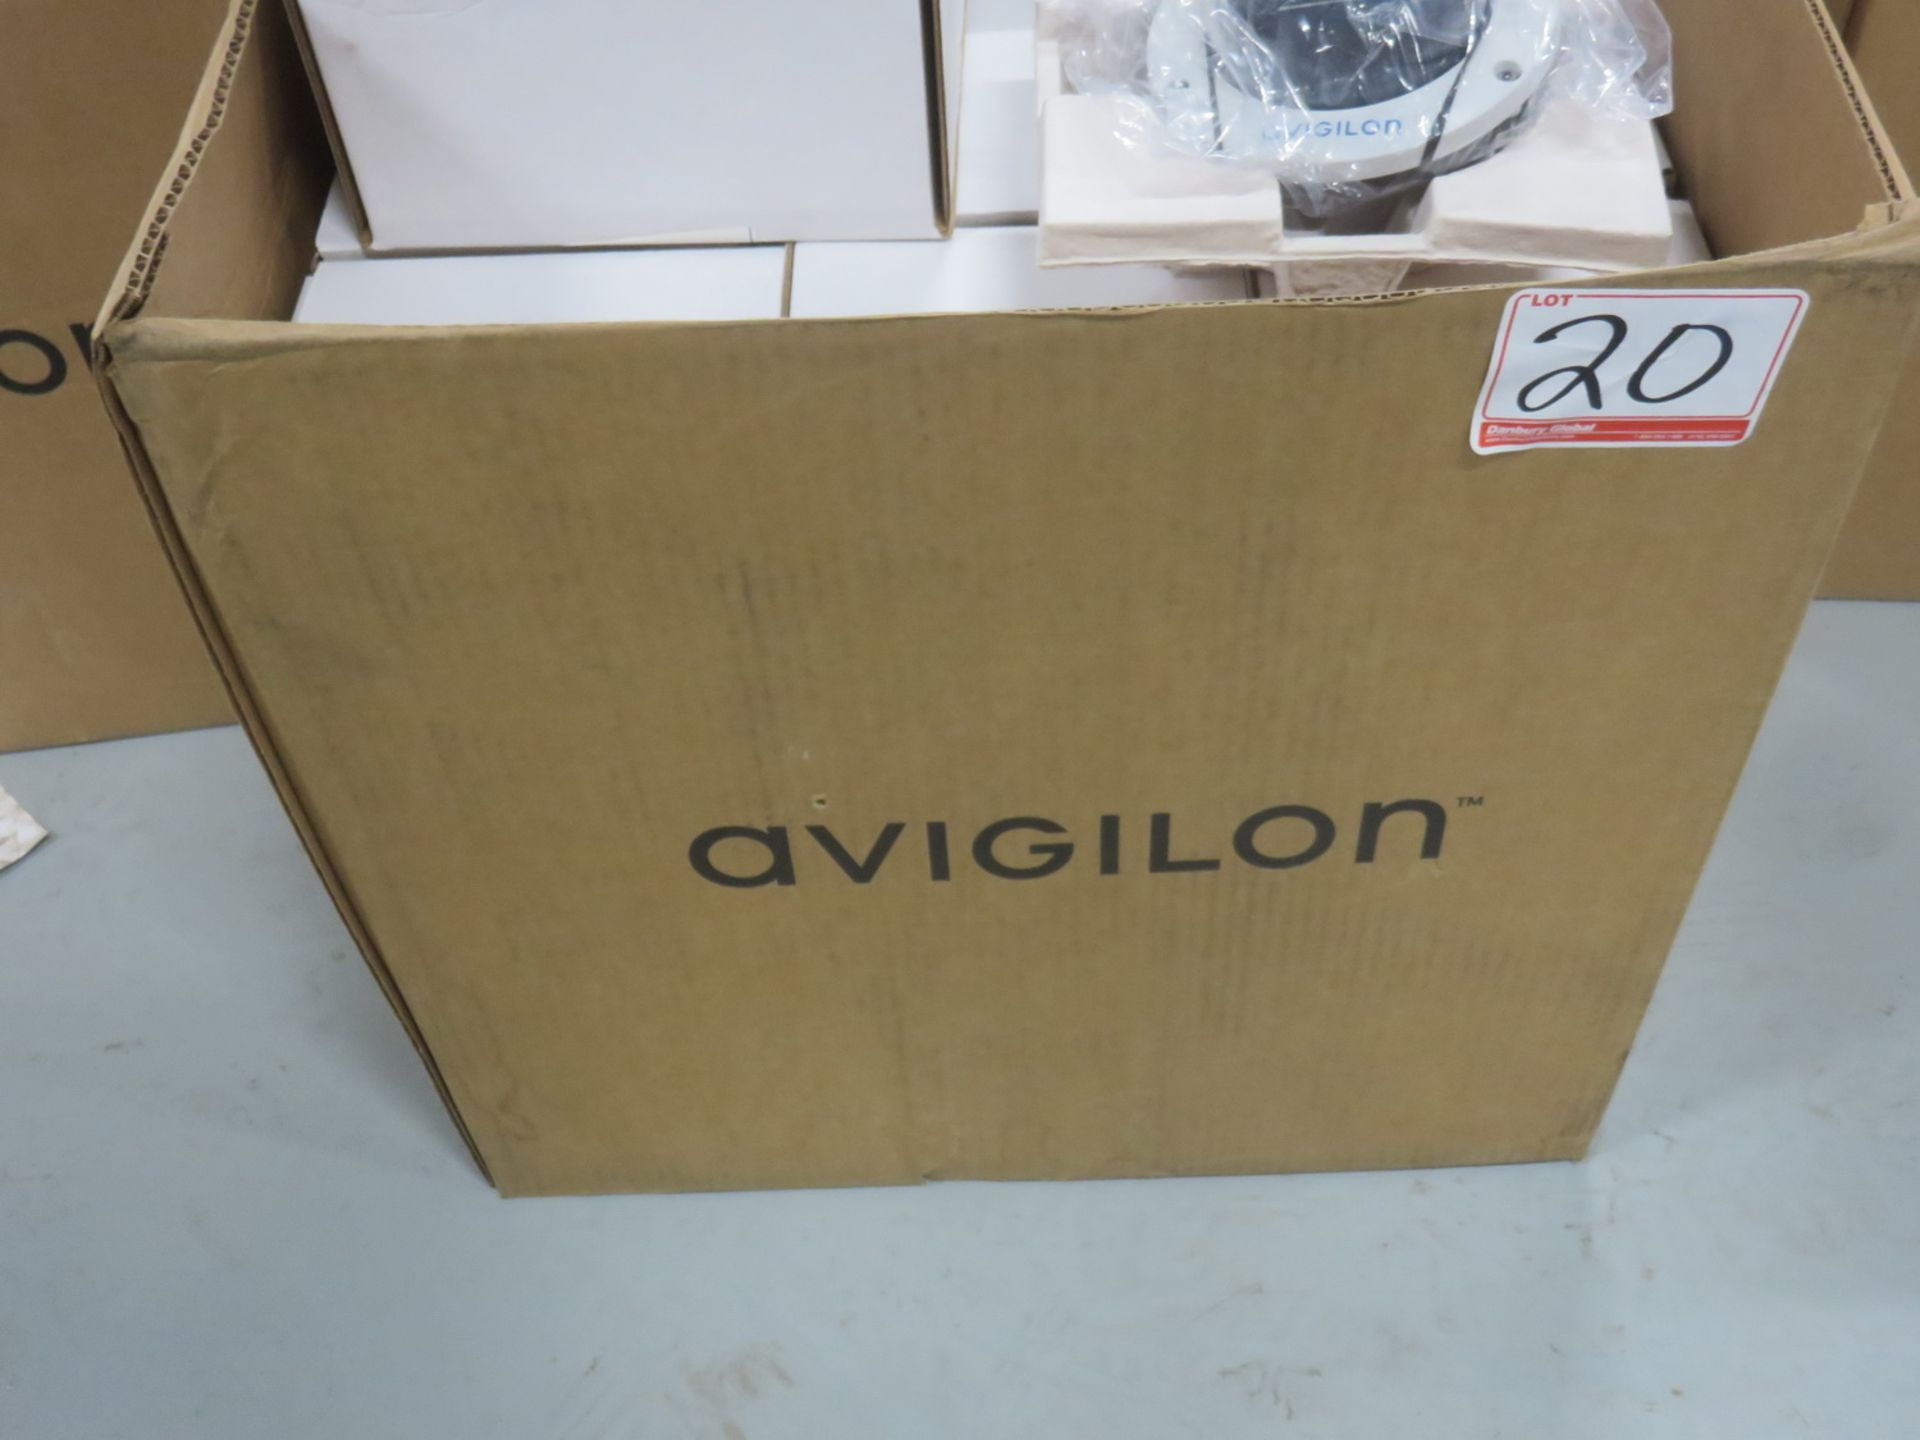 Lot 20A - UNITS - NEW - AVIGILON MODEL (1.3C-H4SL-DO1-IR) DOME SECURITY CAMERAS WITH LIGHT-CATCHER